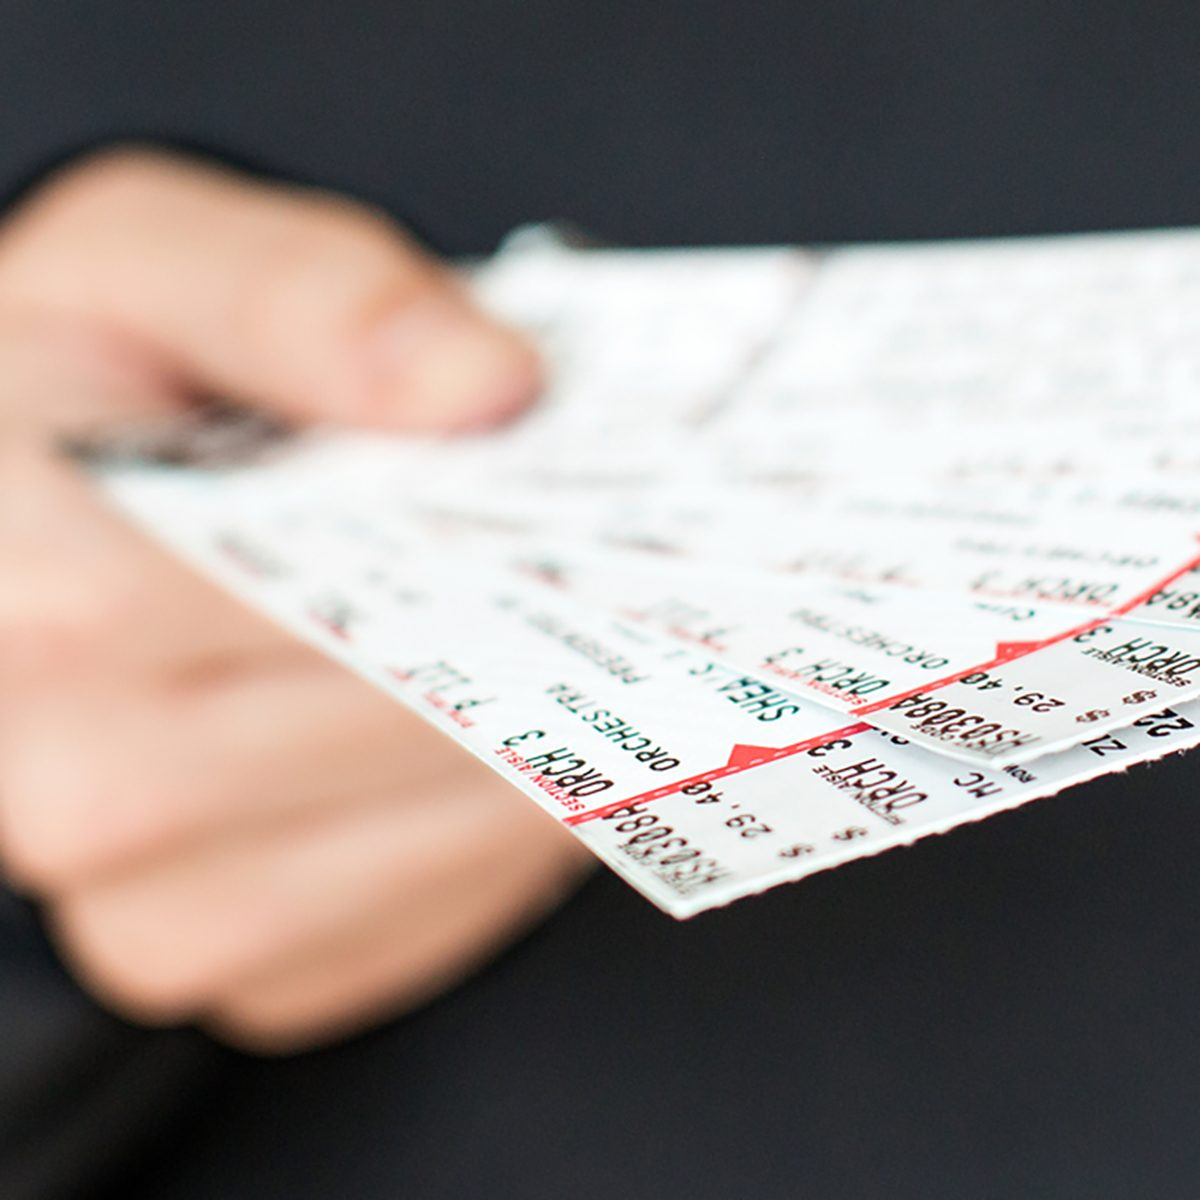 Tickets being held in a hand